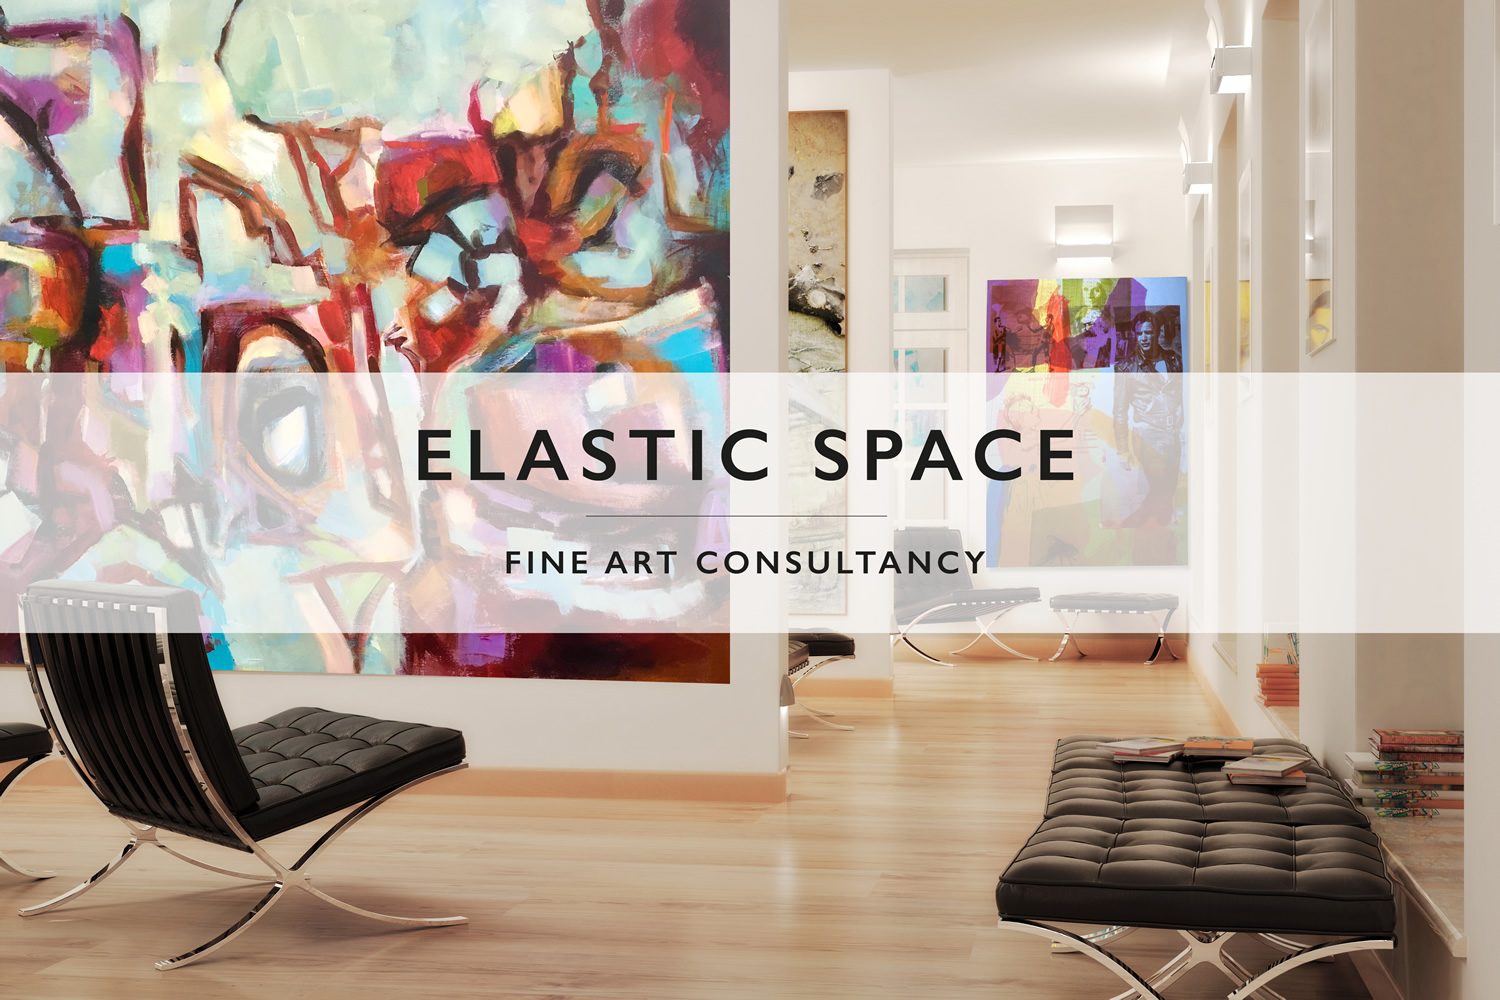 Elastic Space Ltd - Fine Art Consultancy